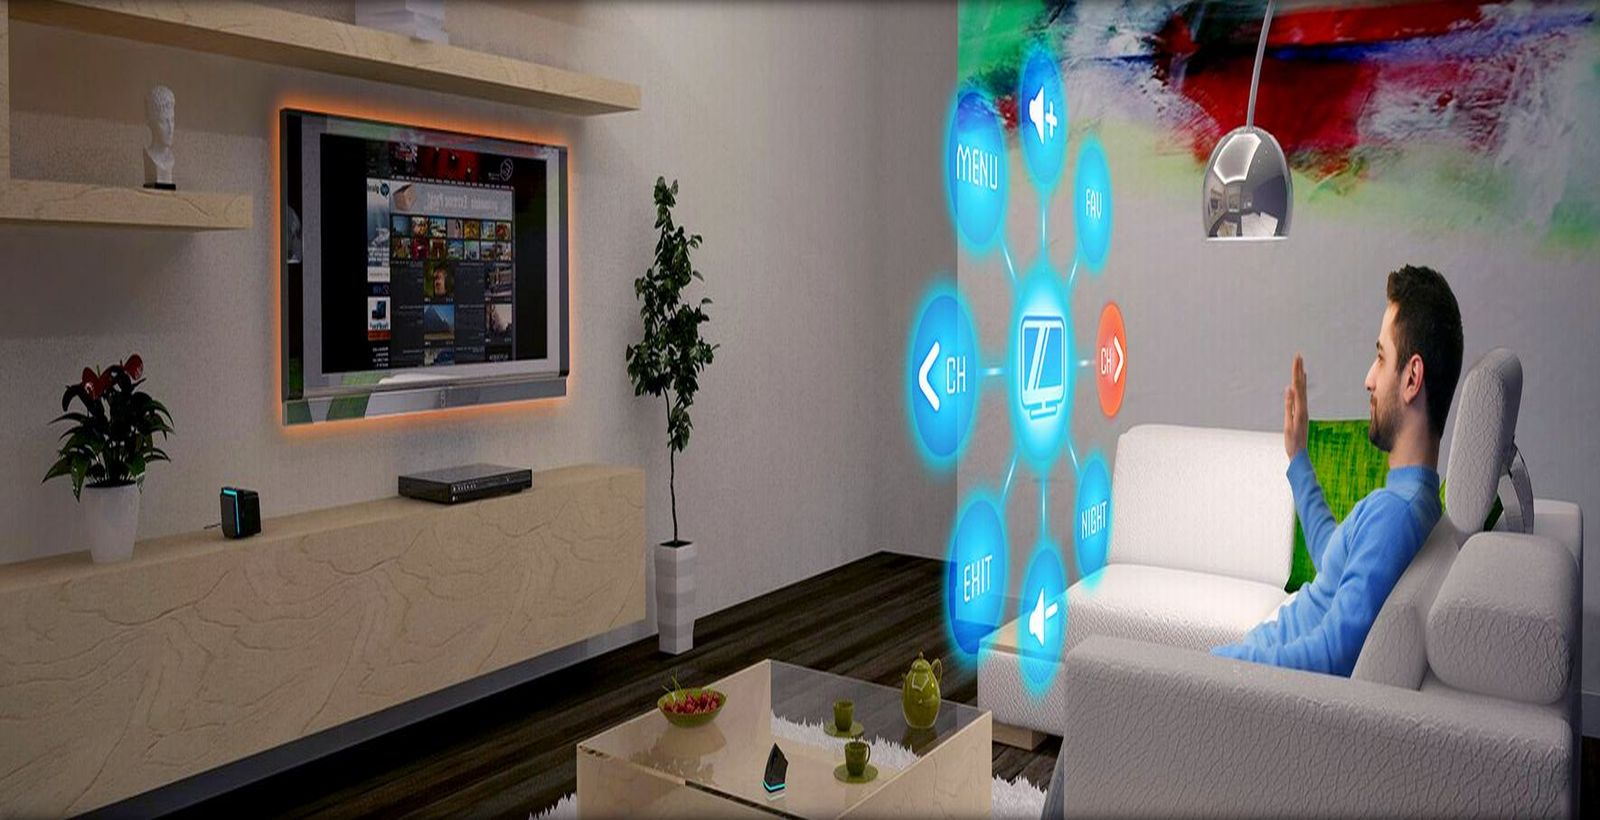 Control Your Home With Gesture And Voice Using Flowton